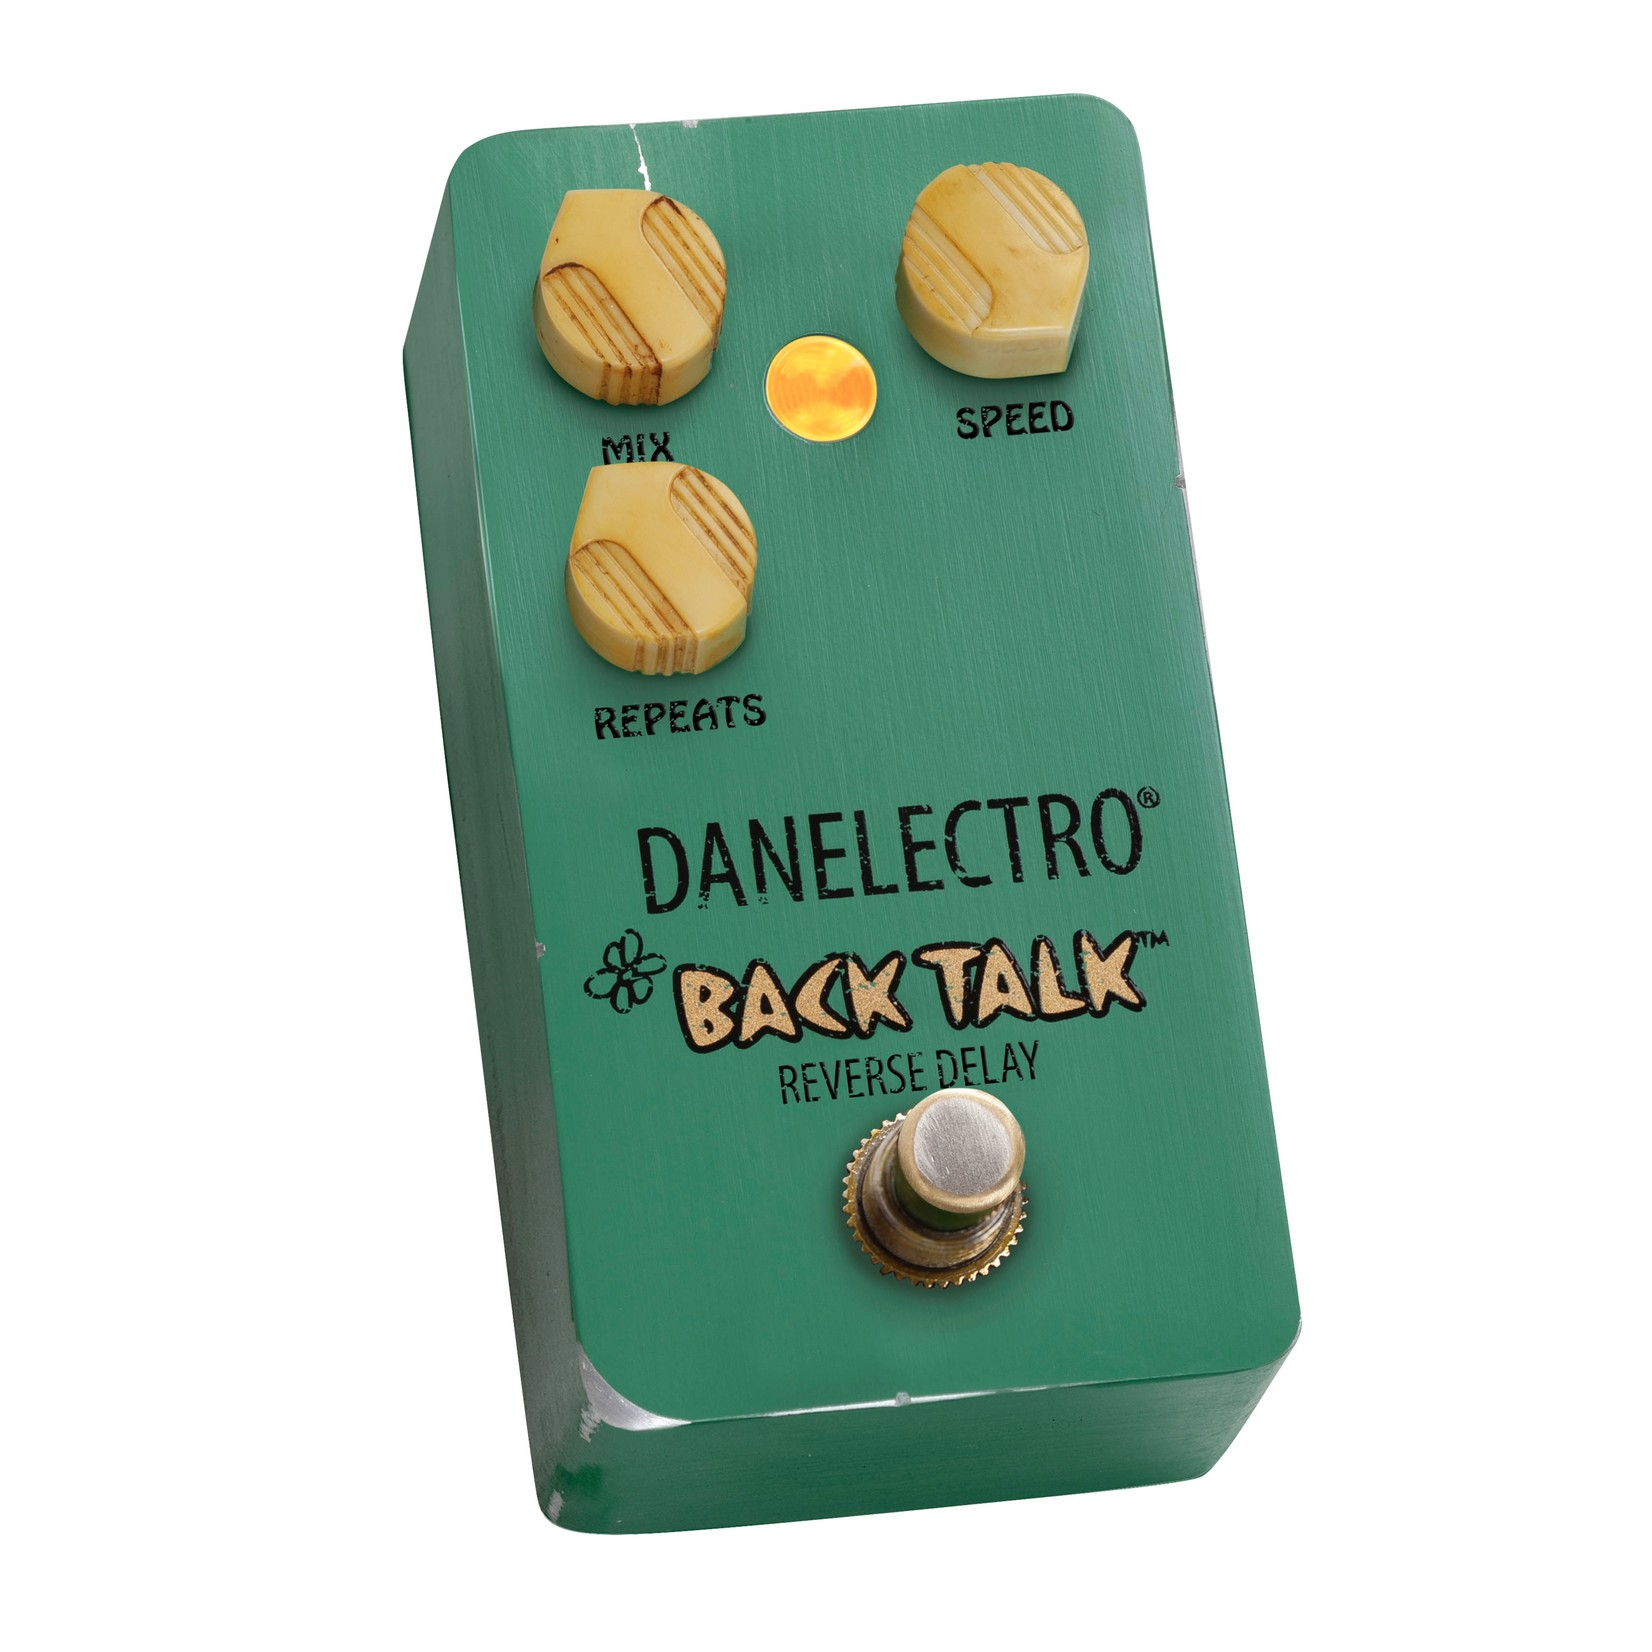 Danelectro Danelectro Back Talk Reverse Delay - 2020 Reissue - In stock and shipping now!